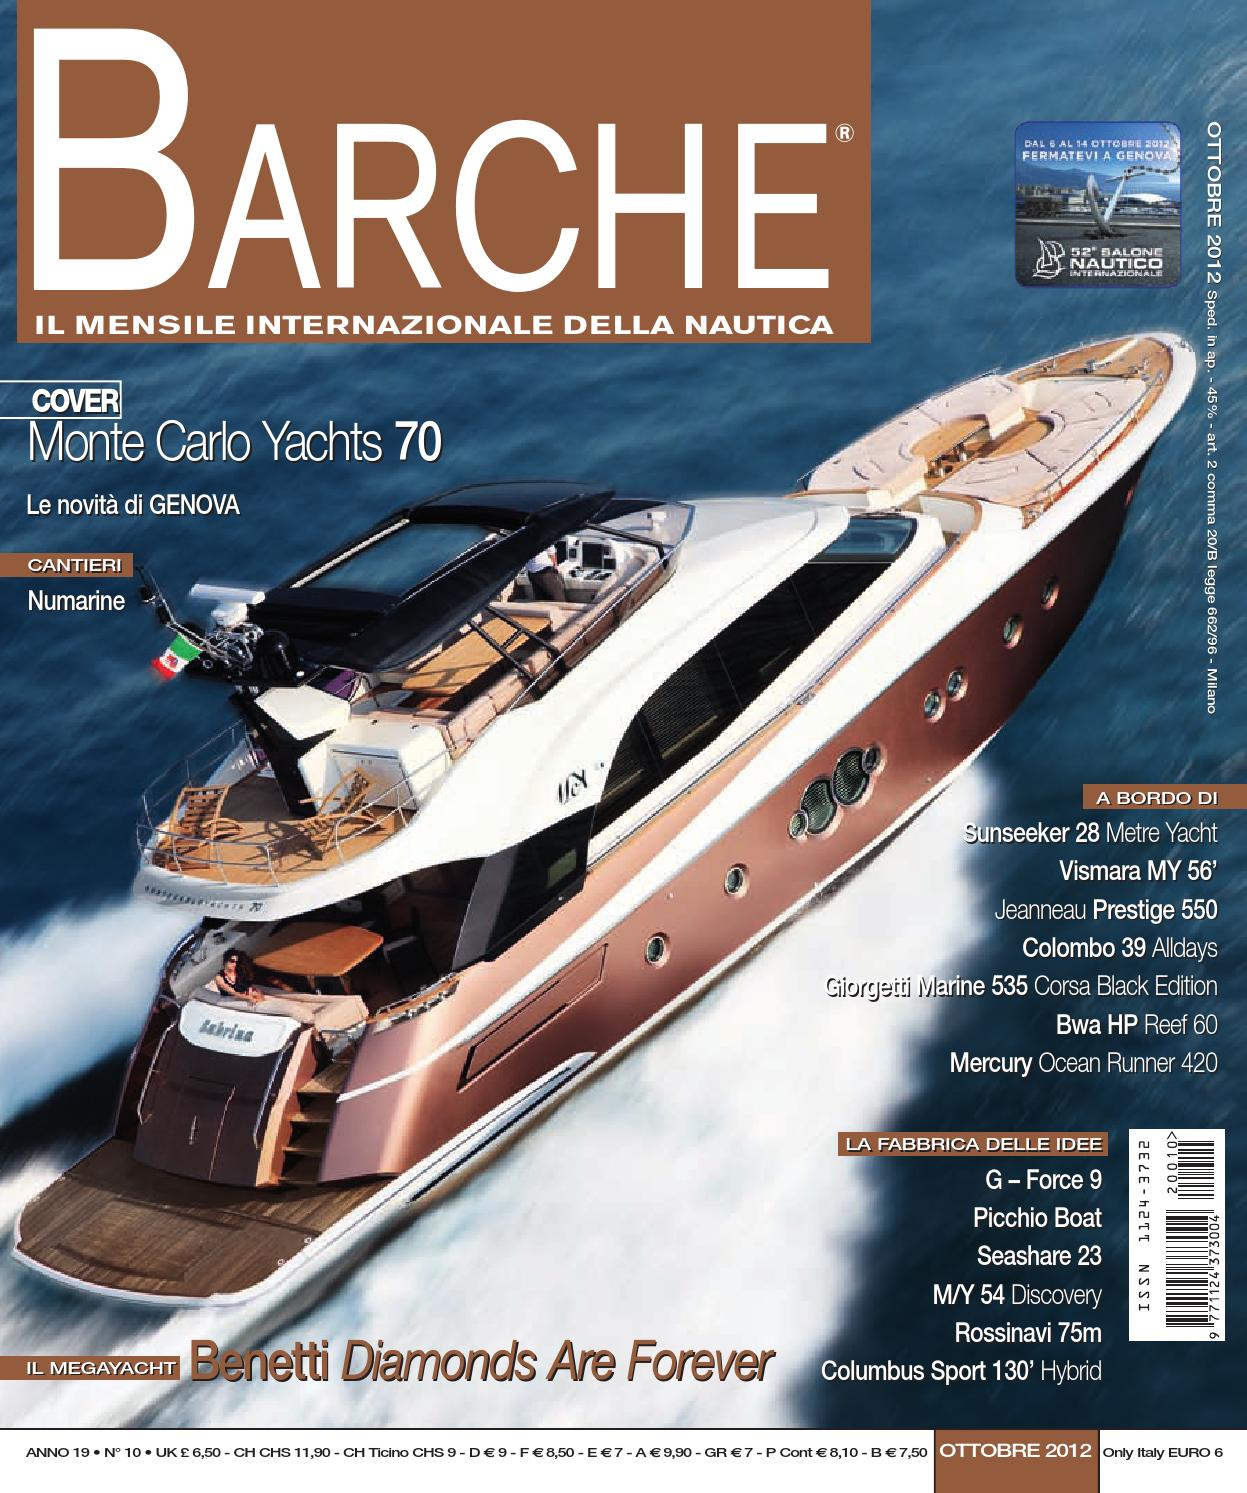 BARCHE October 2012 by INTERNATIONAL SEA PRESS SRL - BARCHE - issuu 1c834289977